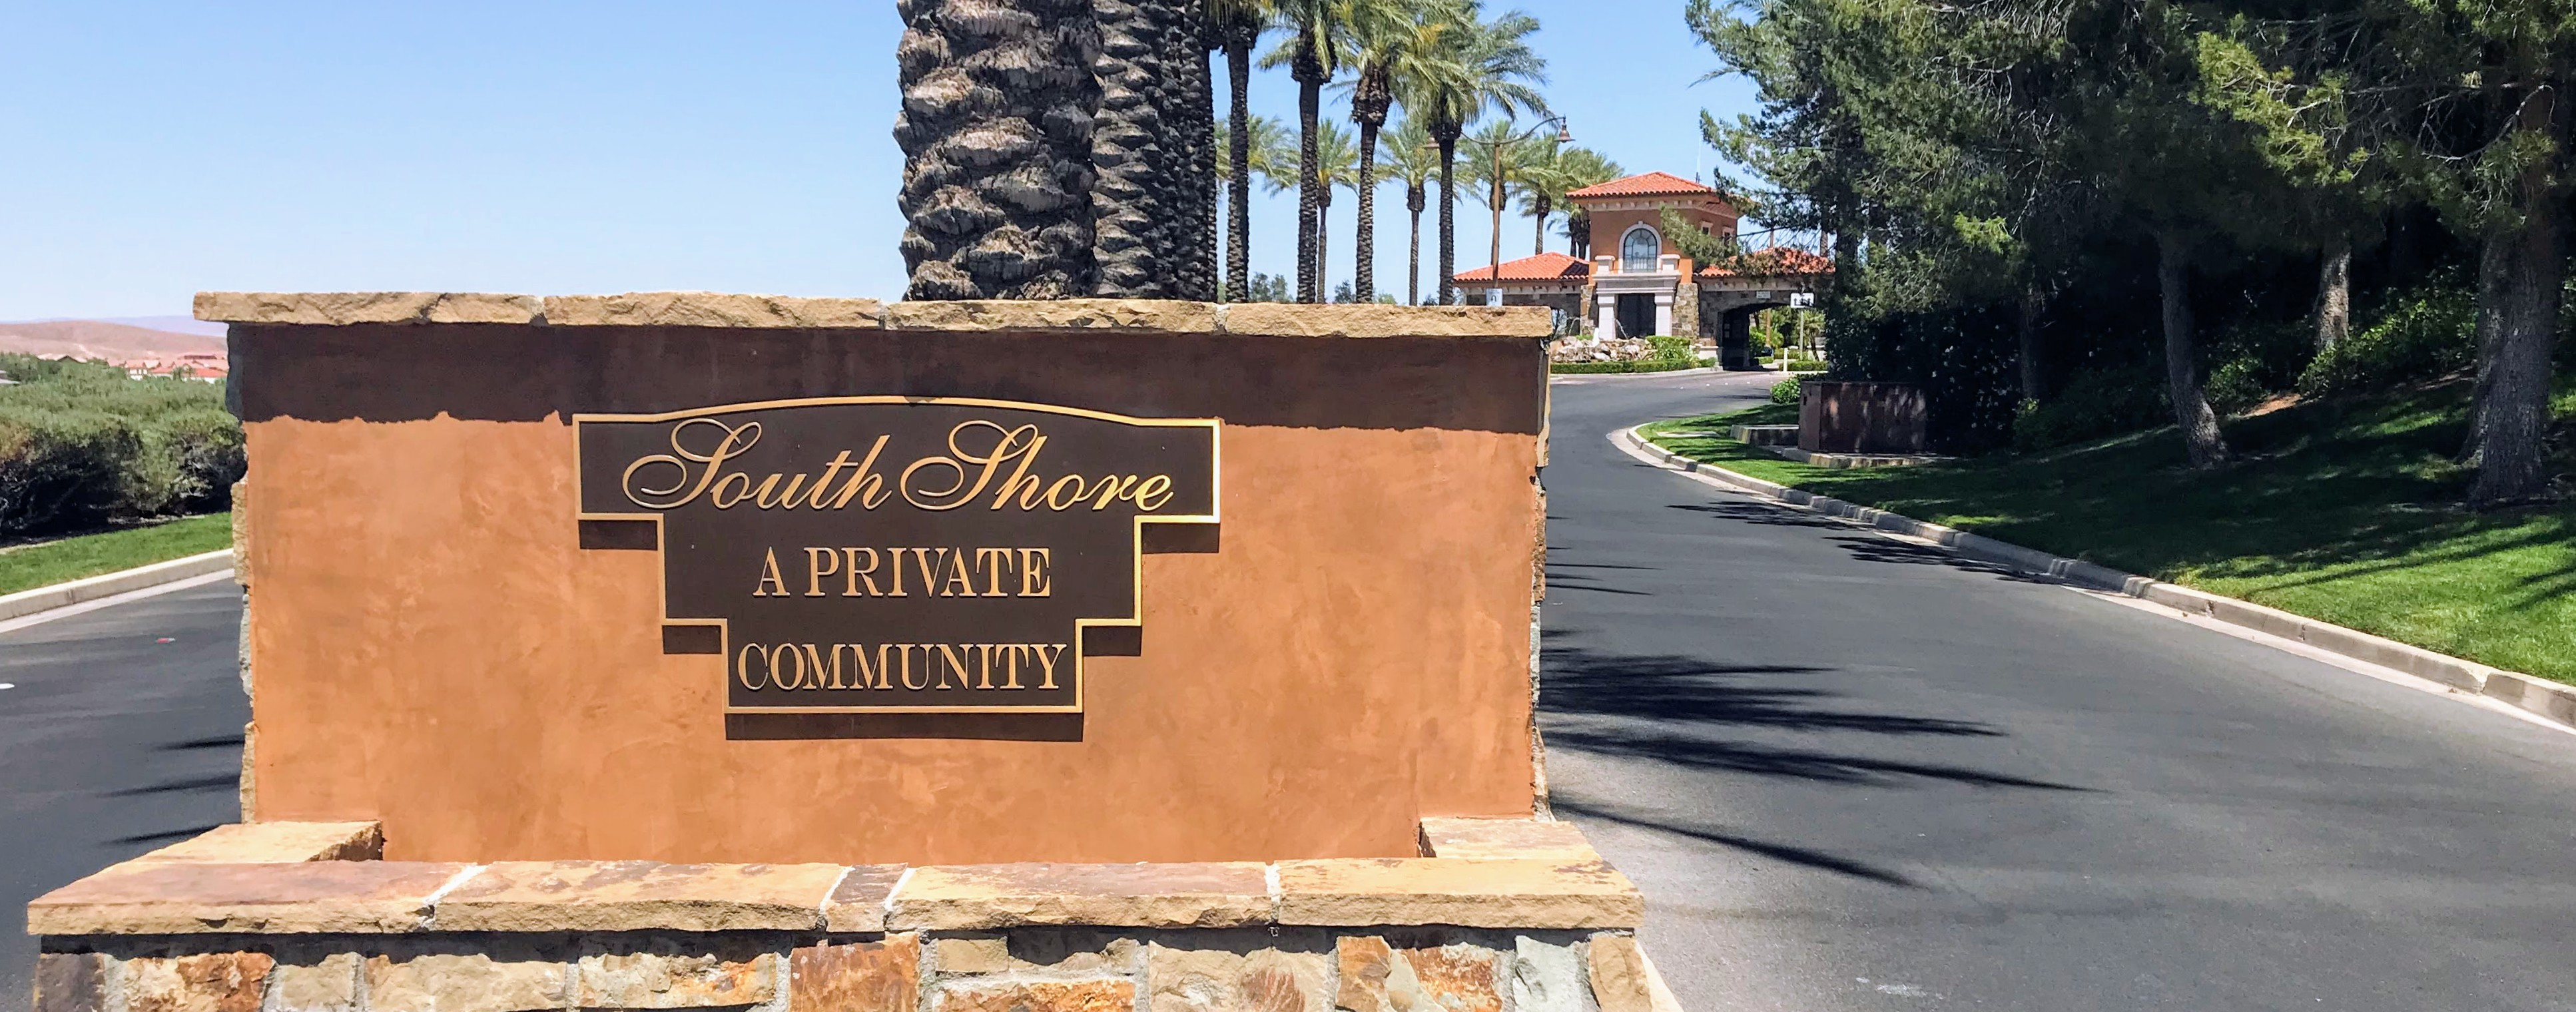 South Shore at Lake Las Vegas